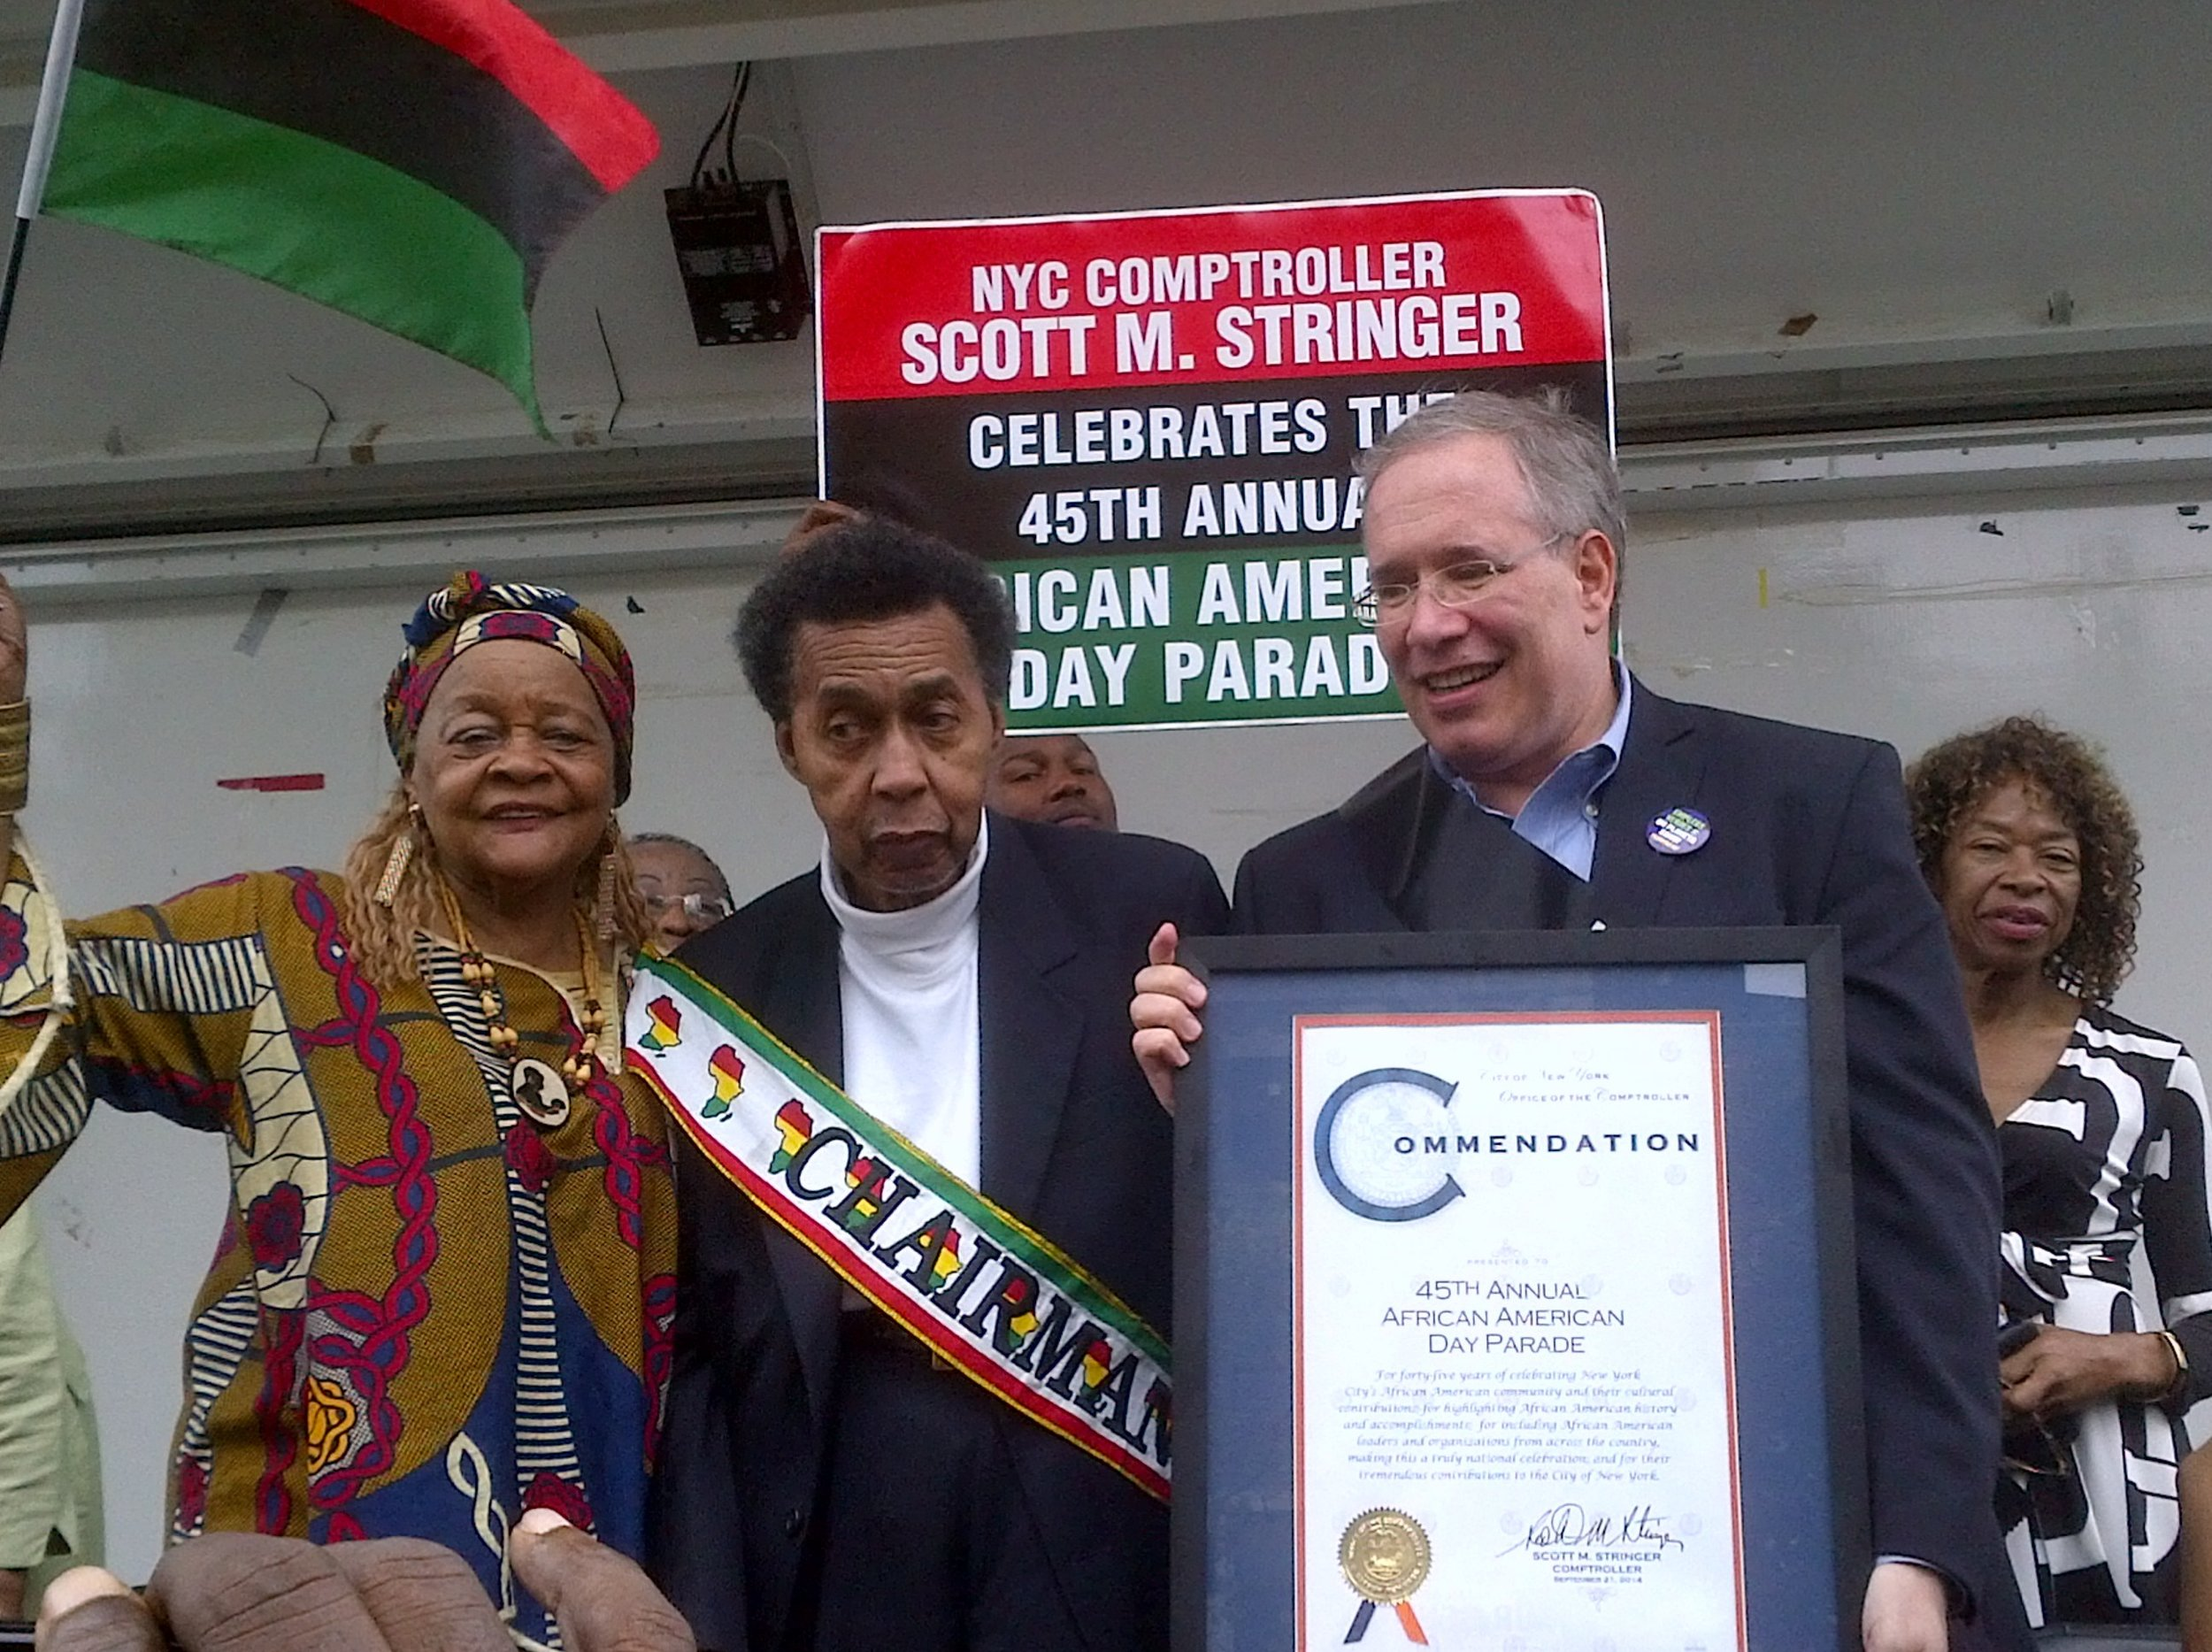 2014 - Chairman Emeritus Abe Snyder receives a Proclamation from NYC Comptroller, Scott Stringer, at the 45th annual African American Day Parade